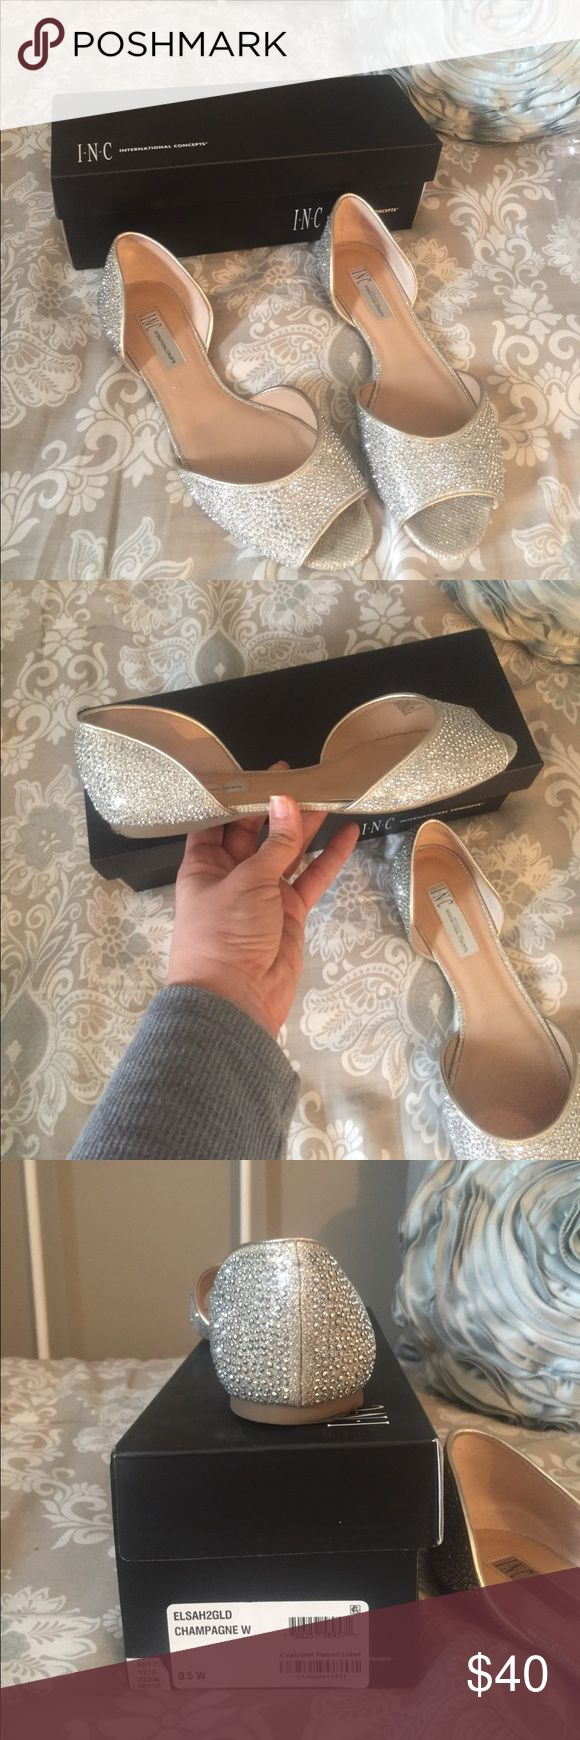 Inc Elsah embellished peep toe flats These beautiful Champagne colored embellished flats are beautiful! Peep toe and come up on the back of the heel. Worn once on my Wedding day! INC International Concepts Shoes Flats & Loafers